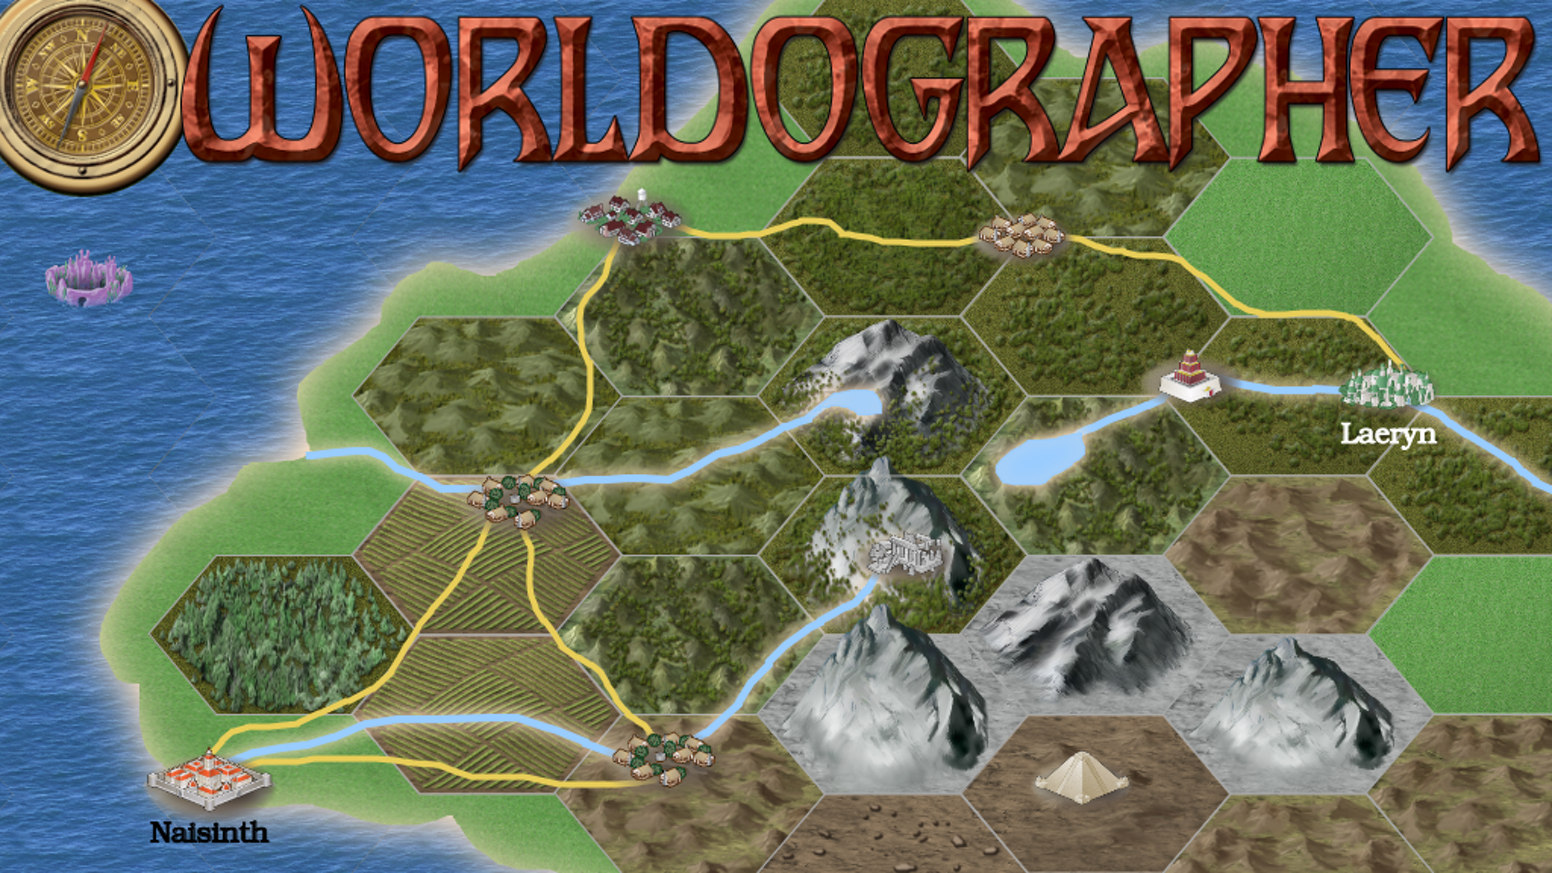 Worldographer hexographer 2 easy mapworld creator by inkwell new version of the hexographer world map software better child maps undoredo gumiabroncs